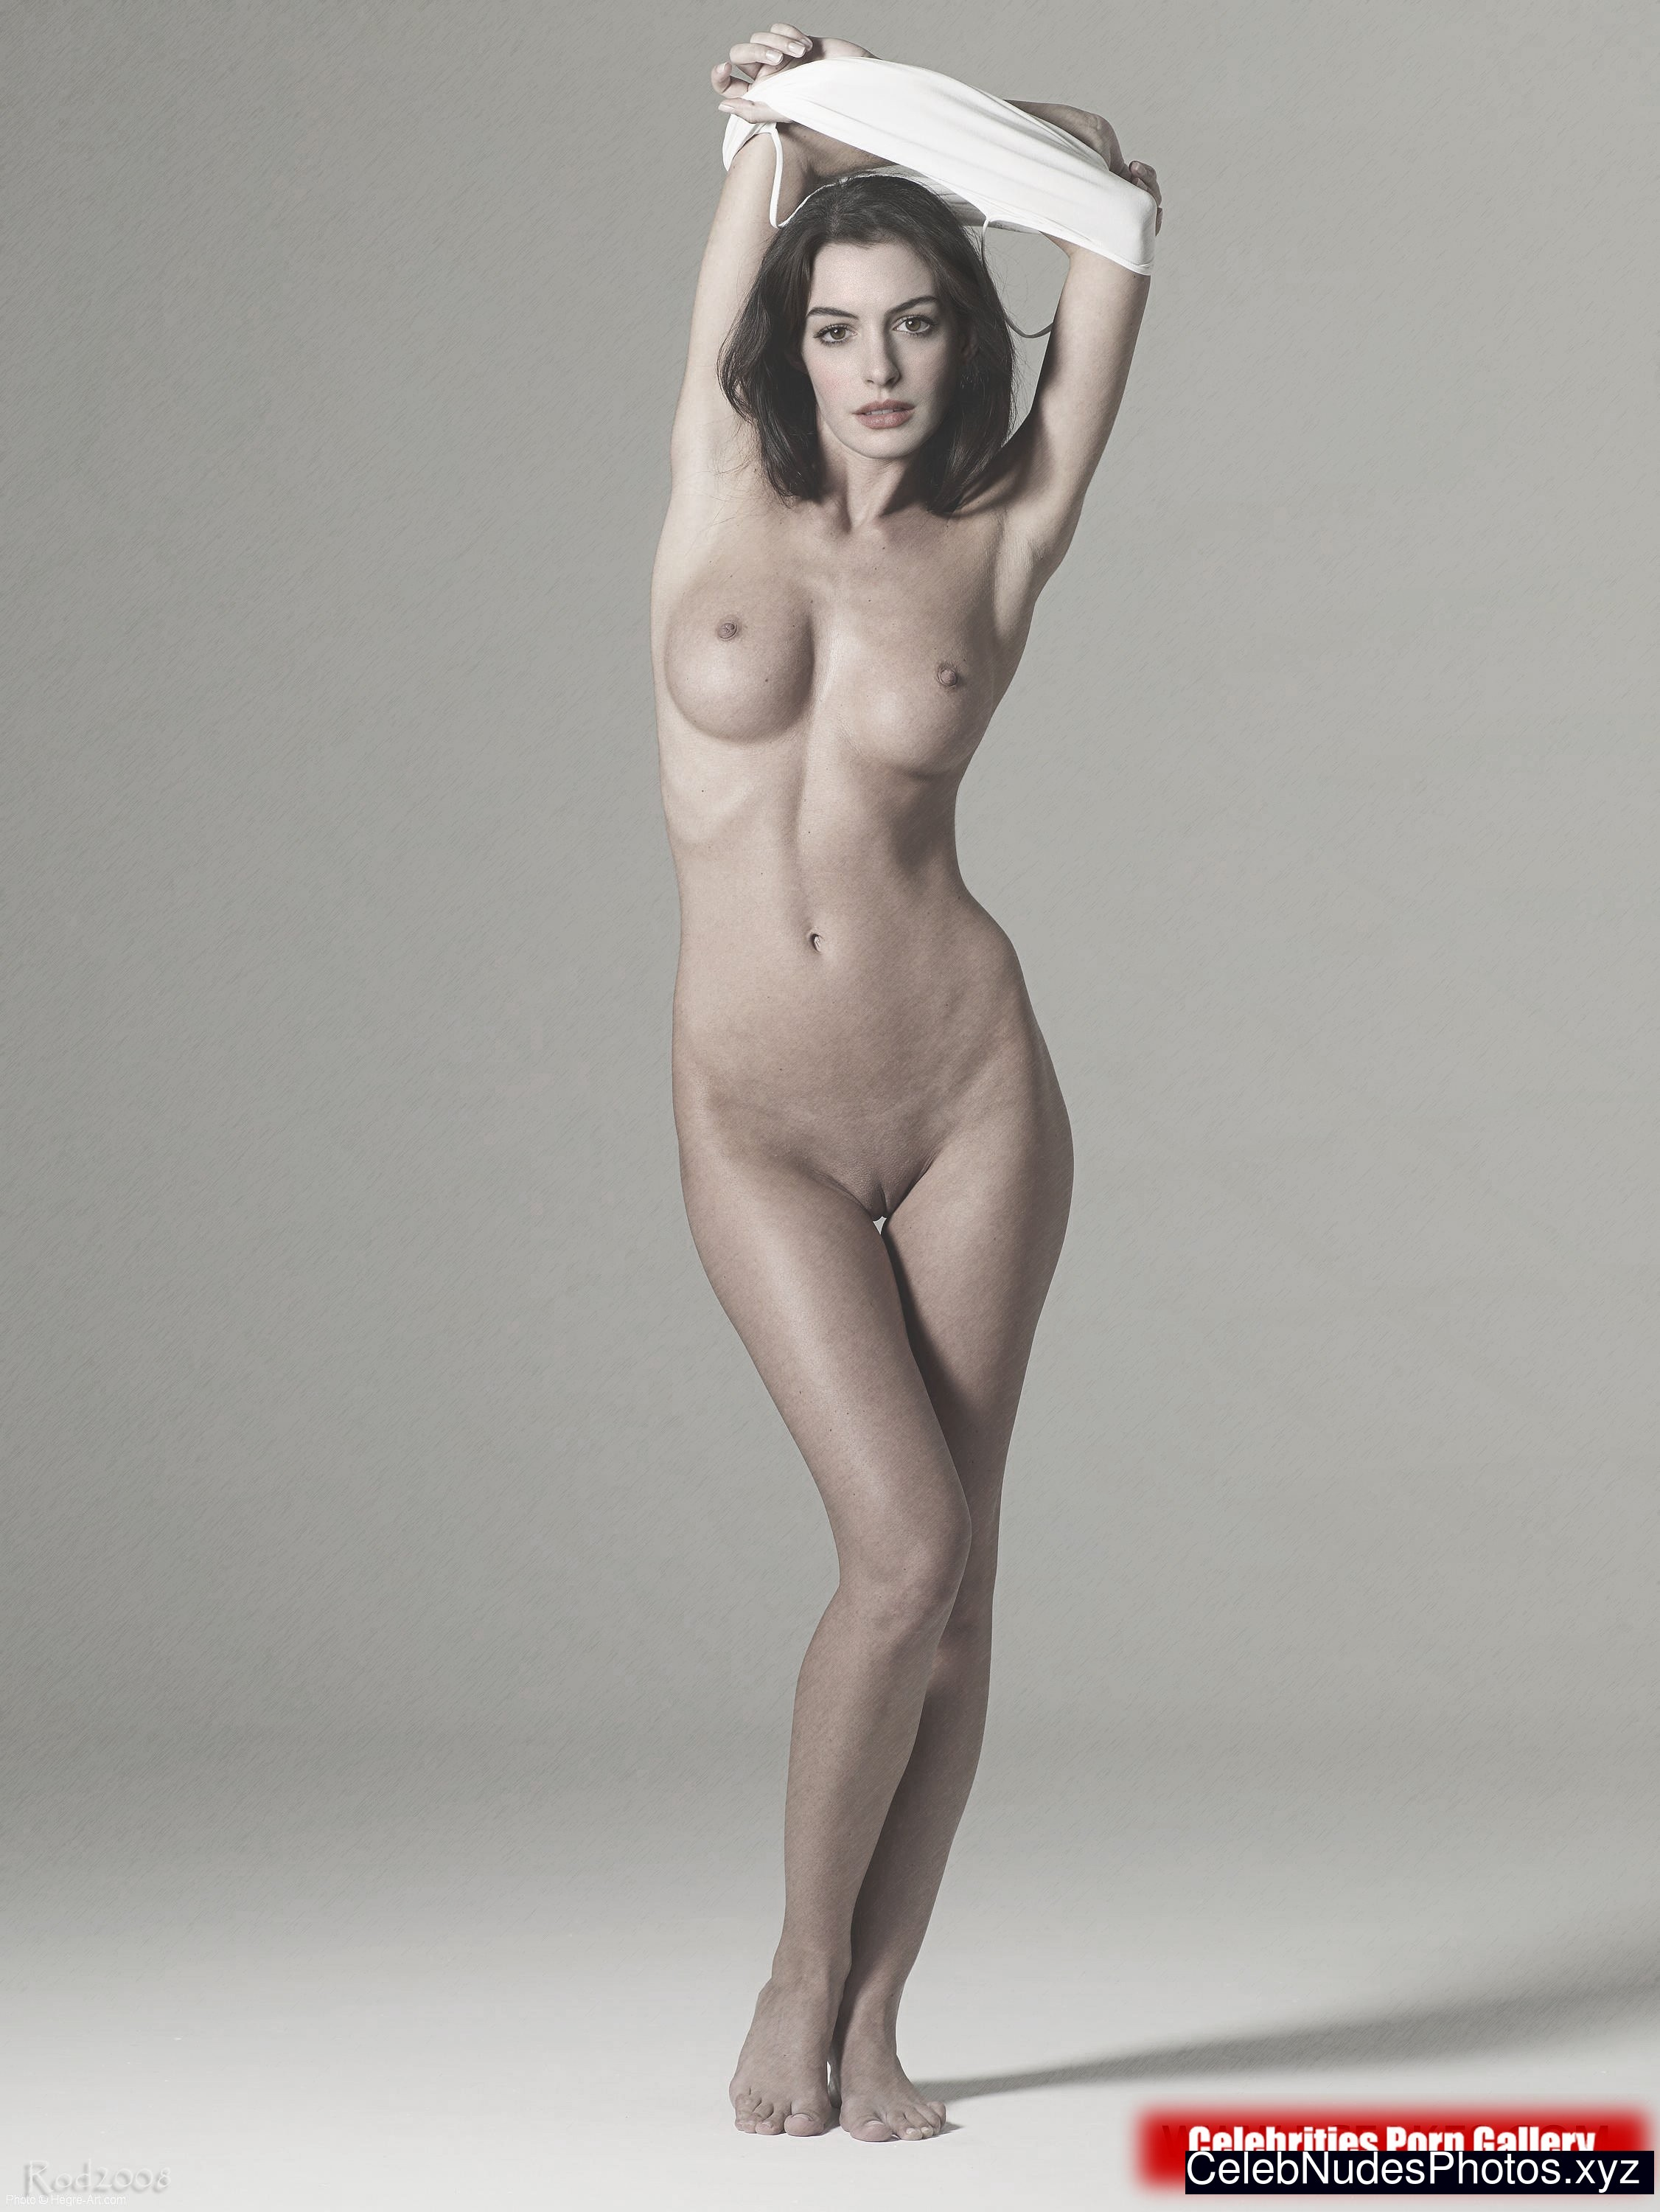 Nude Pictures Of Anne Hathaway 6